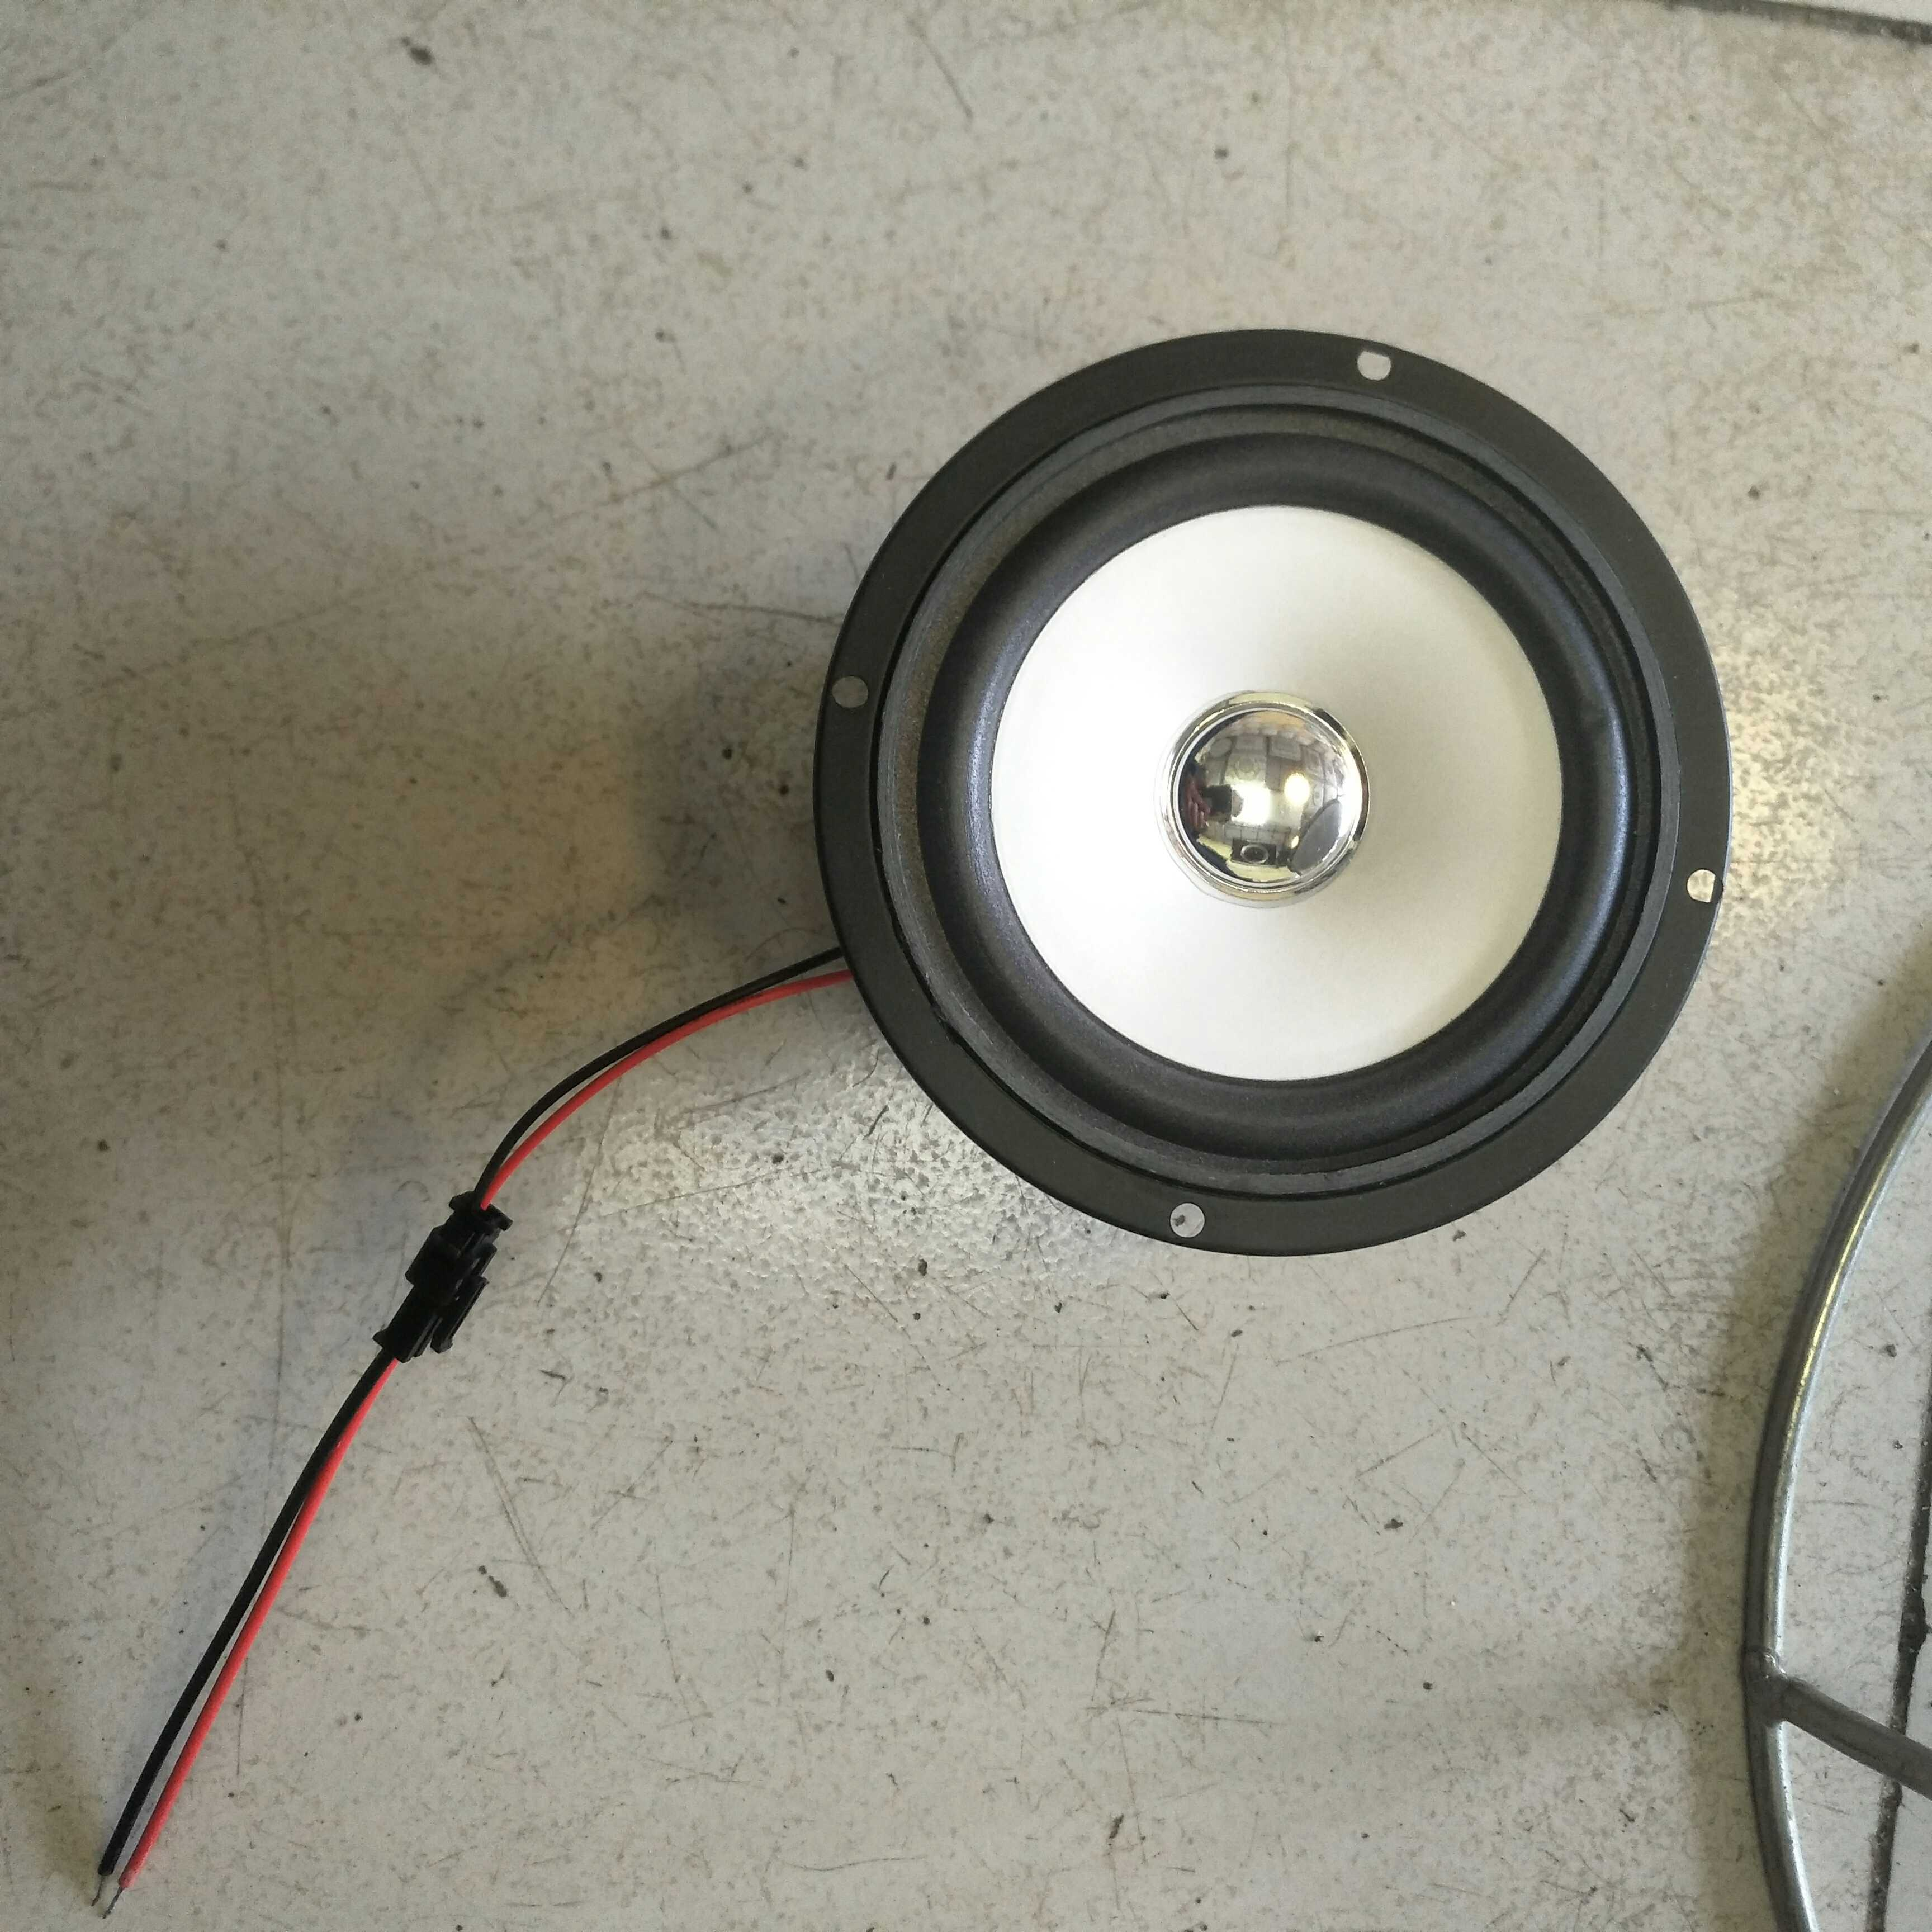 Ceiling lamp / lamp / furniture / retrofit with Bluetooth music Kit / Bluetooth subwoofer accessories